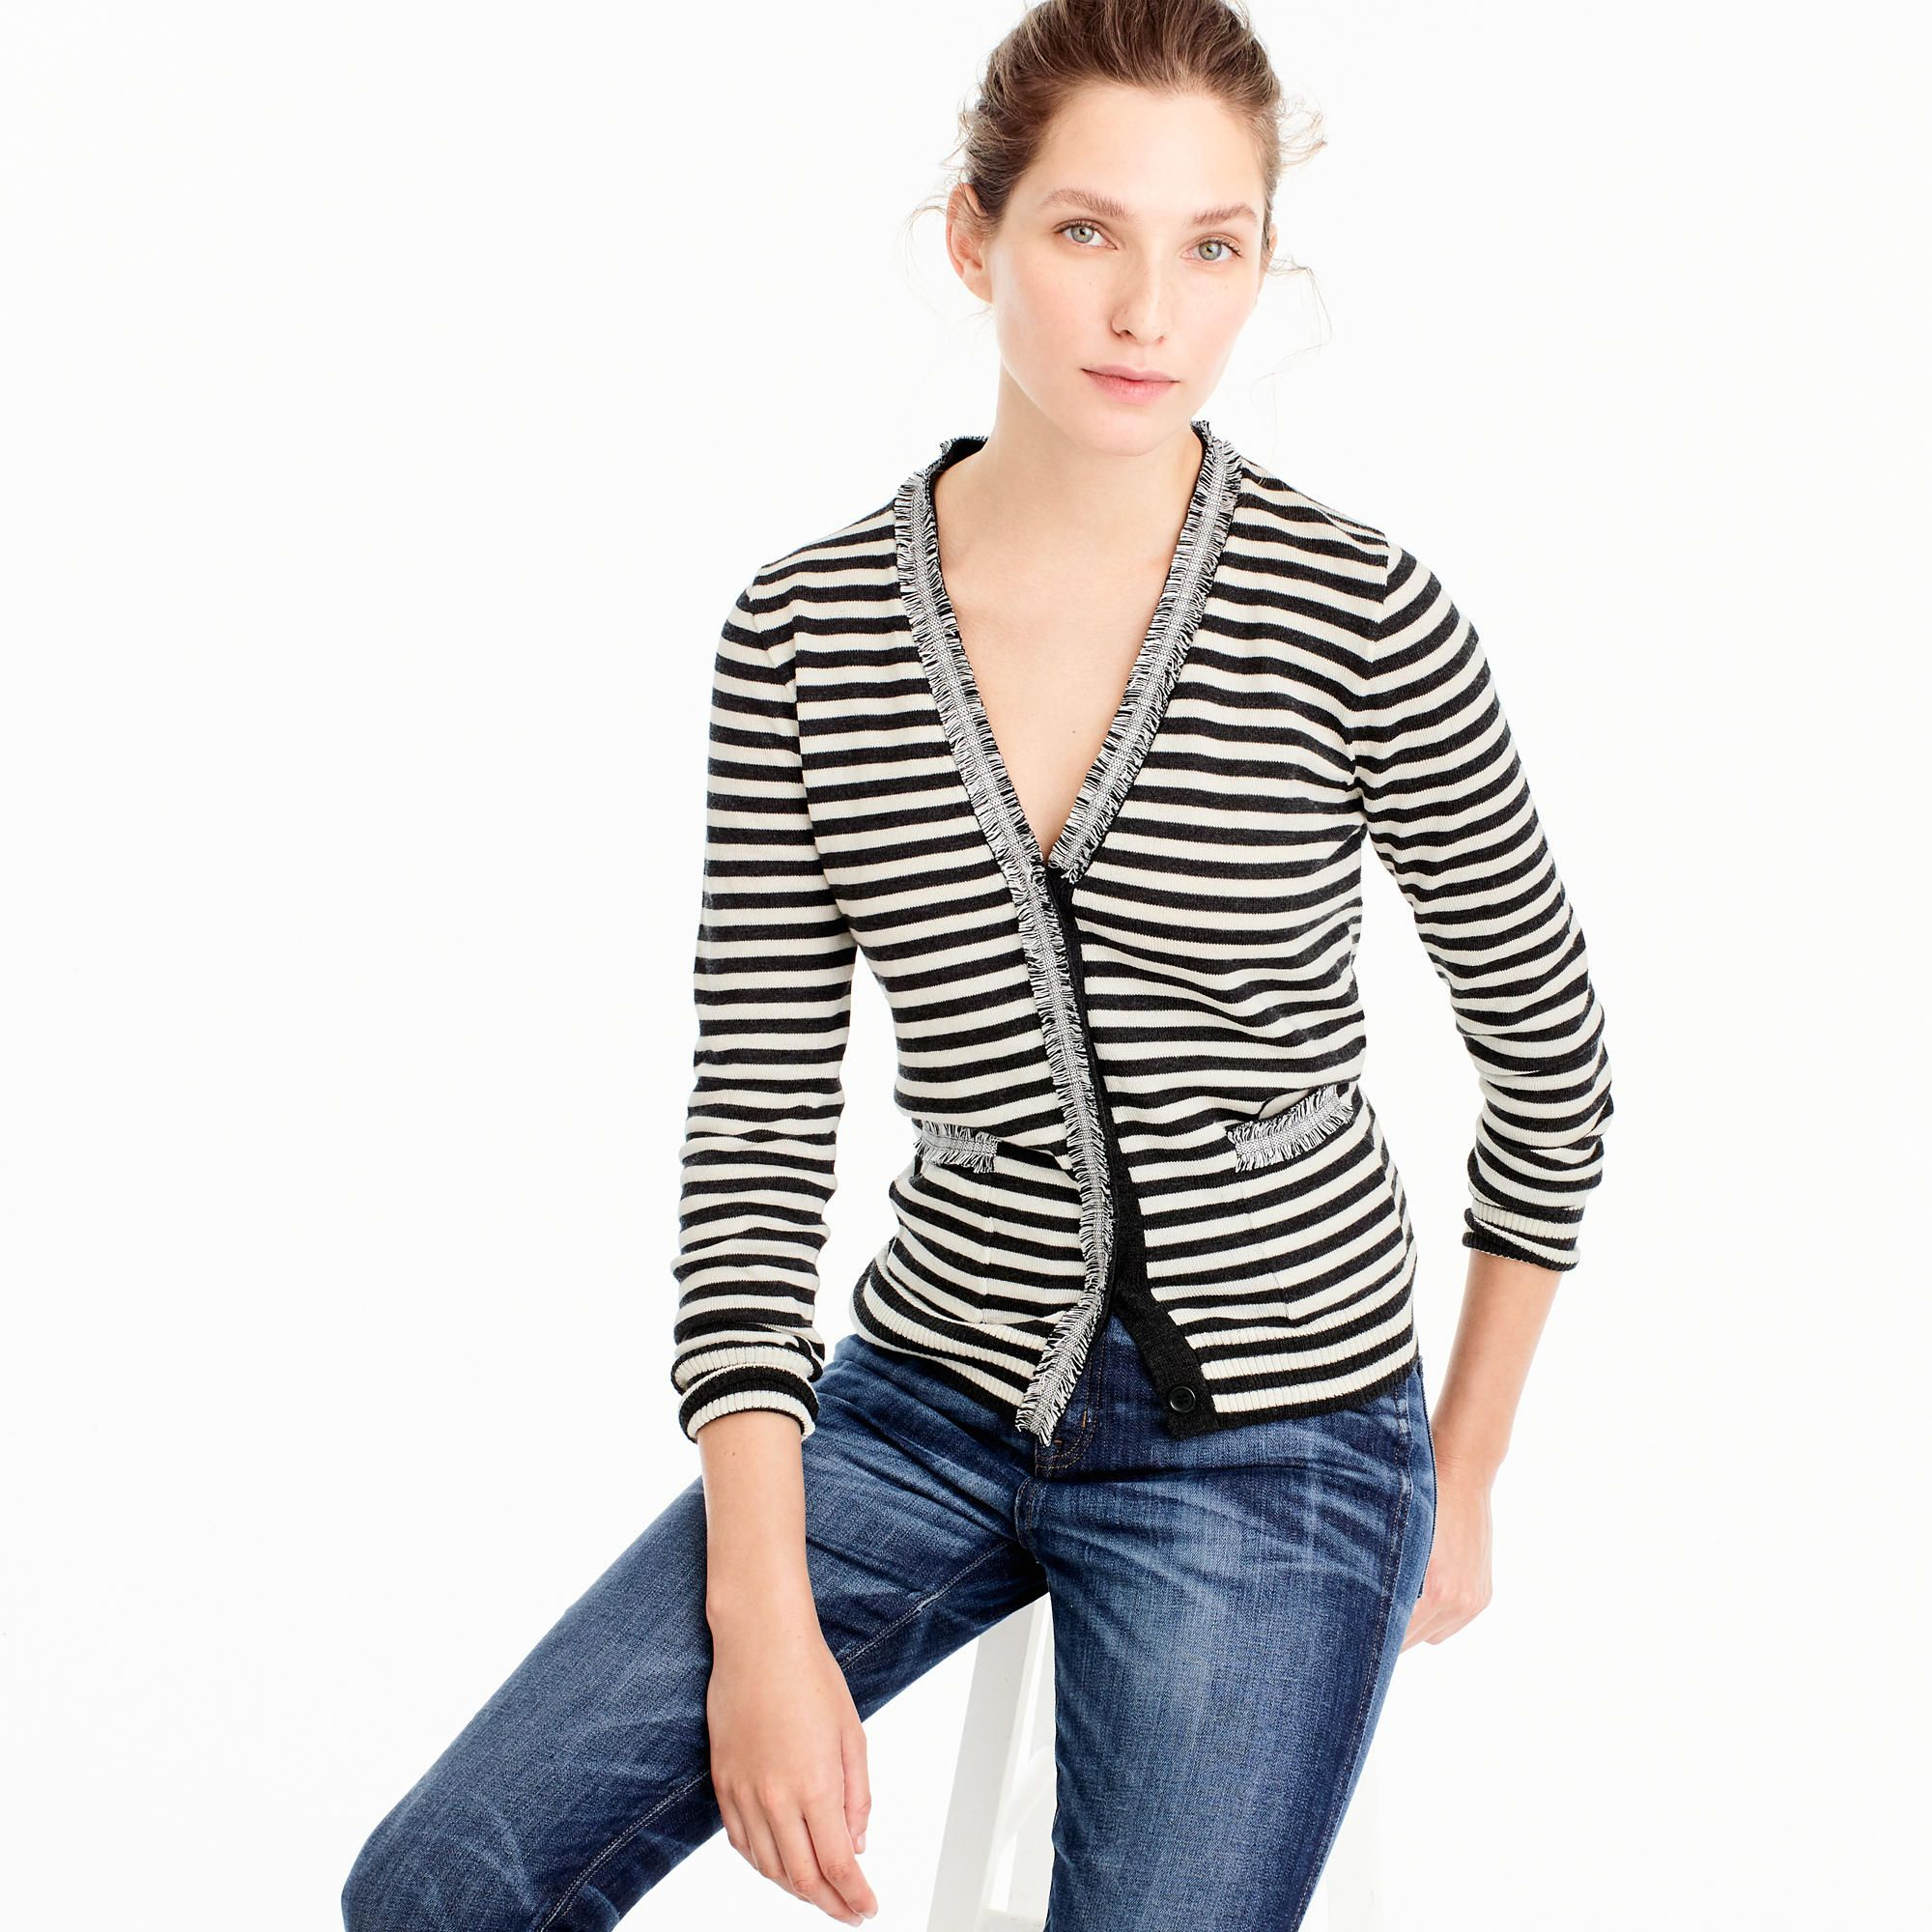 Striped Harlow cardigan sweater with tweed trim | Women's Smart ...